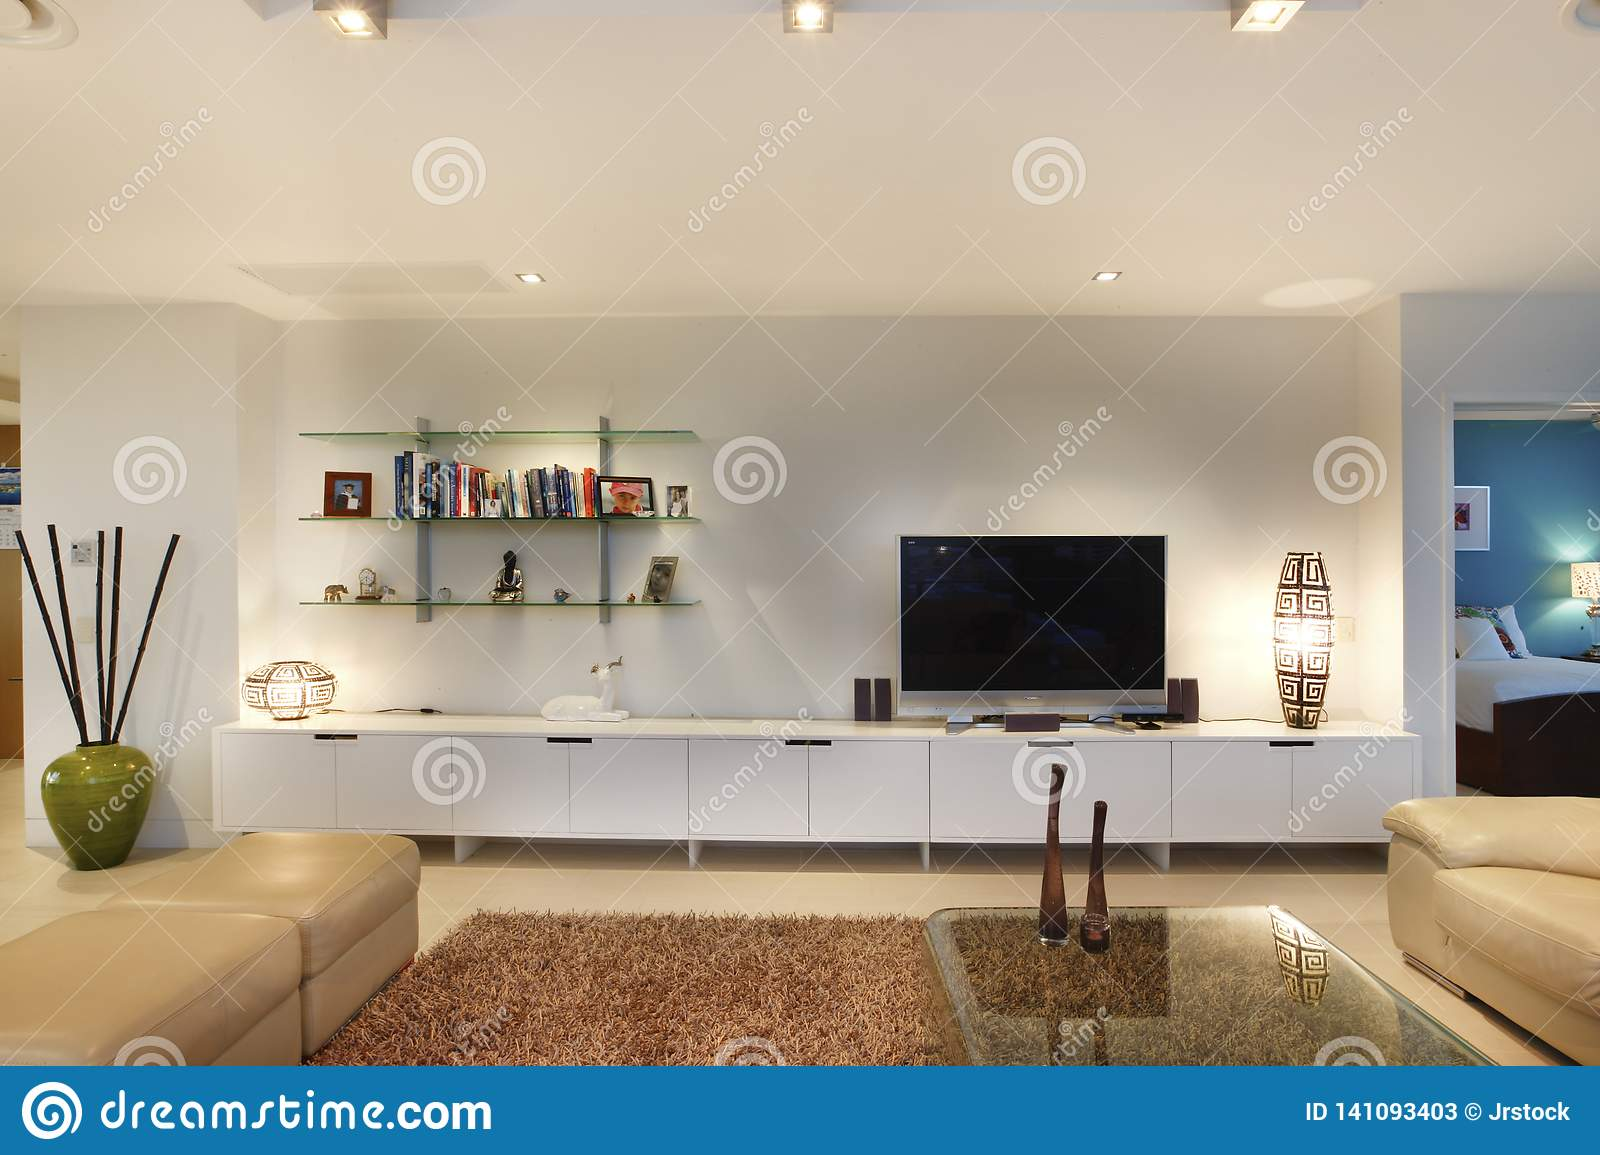 Books And Television In Living Room Stock Image Image Of Indoors Furniture 141093403